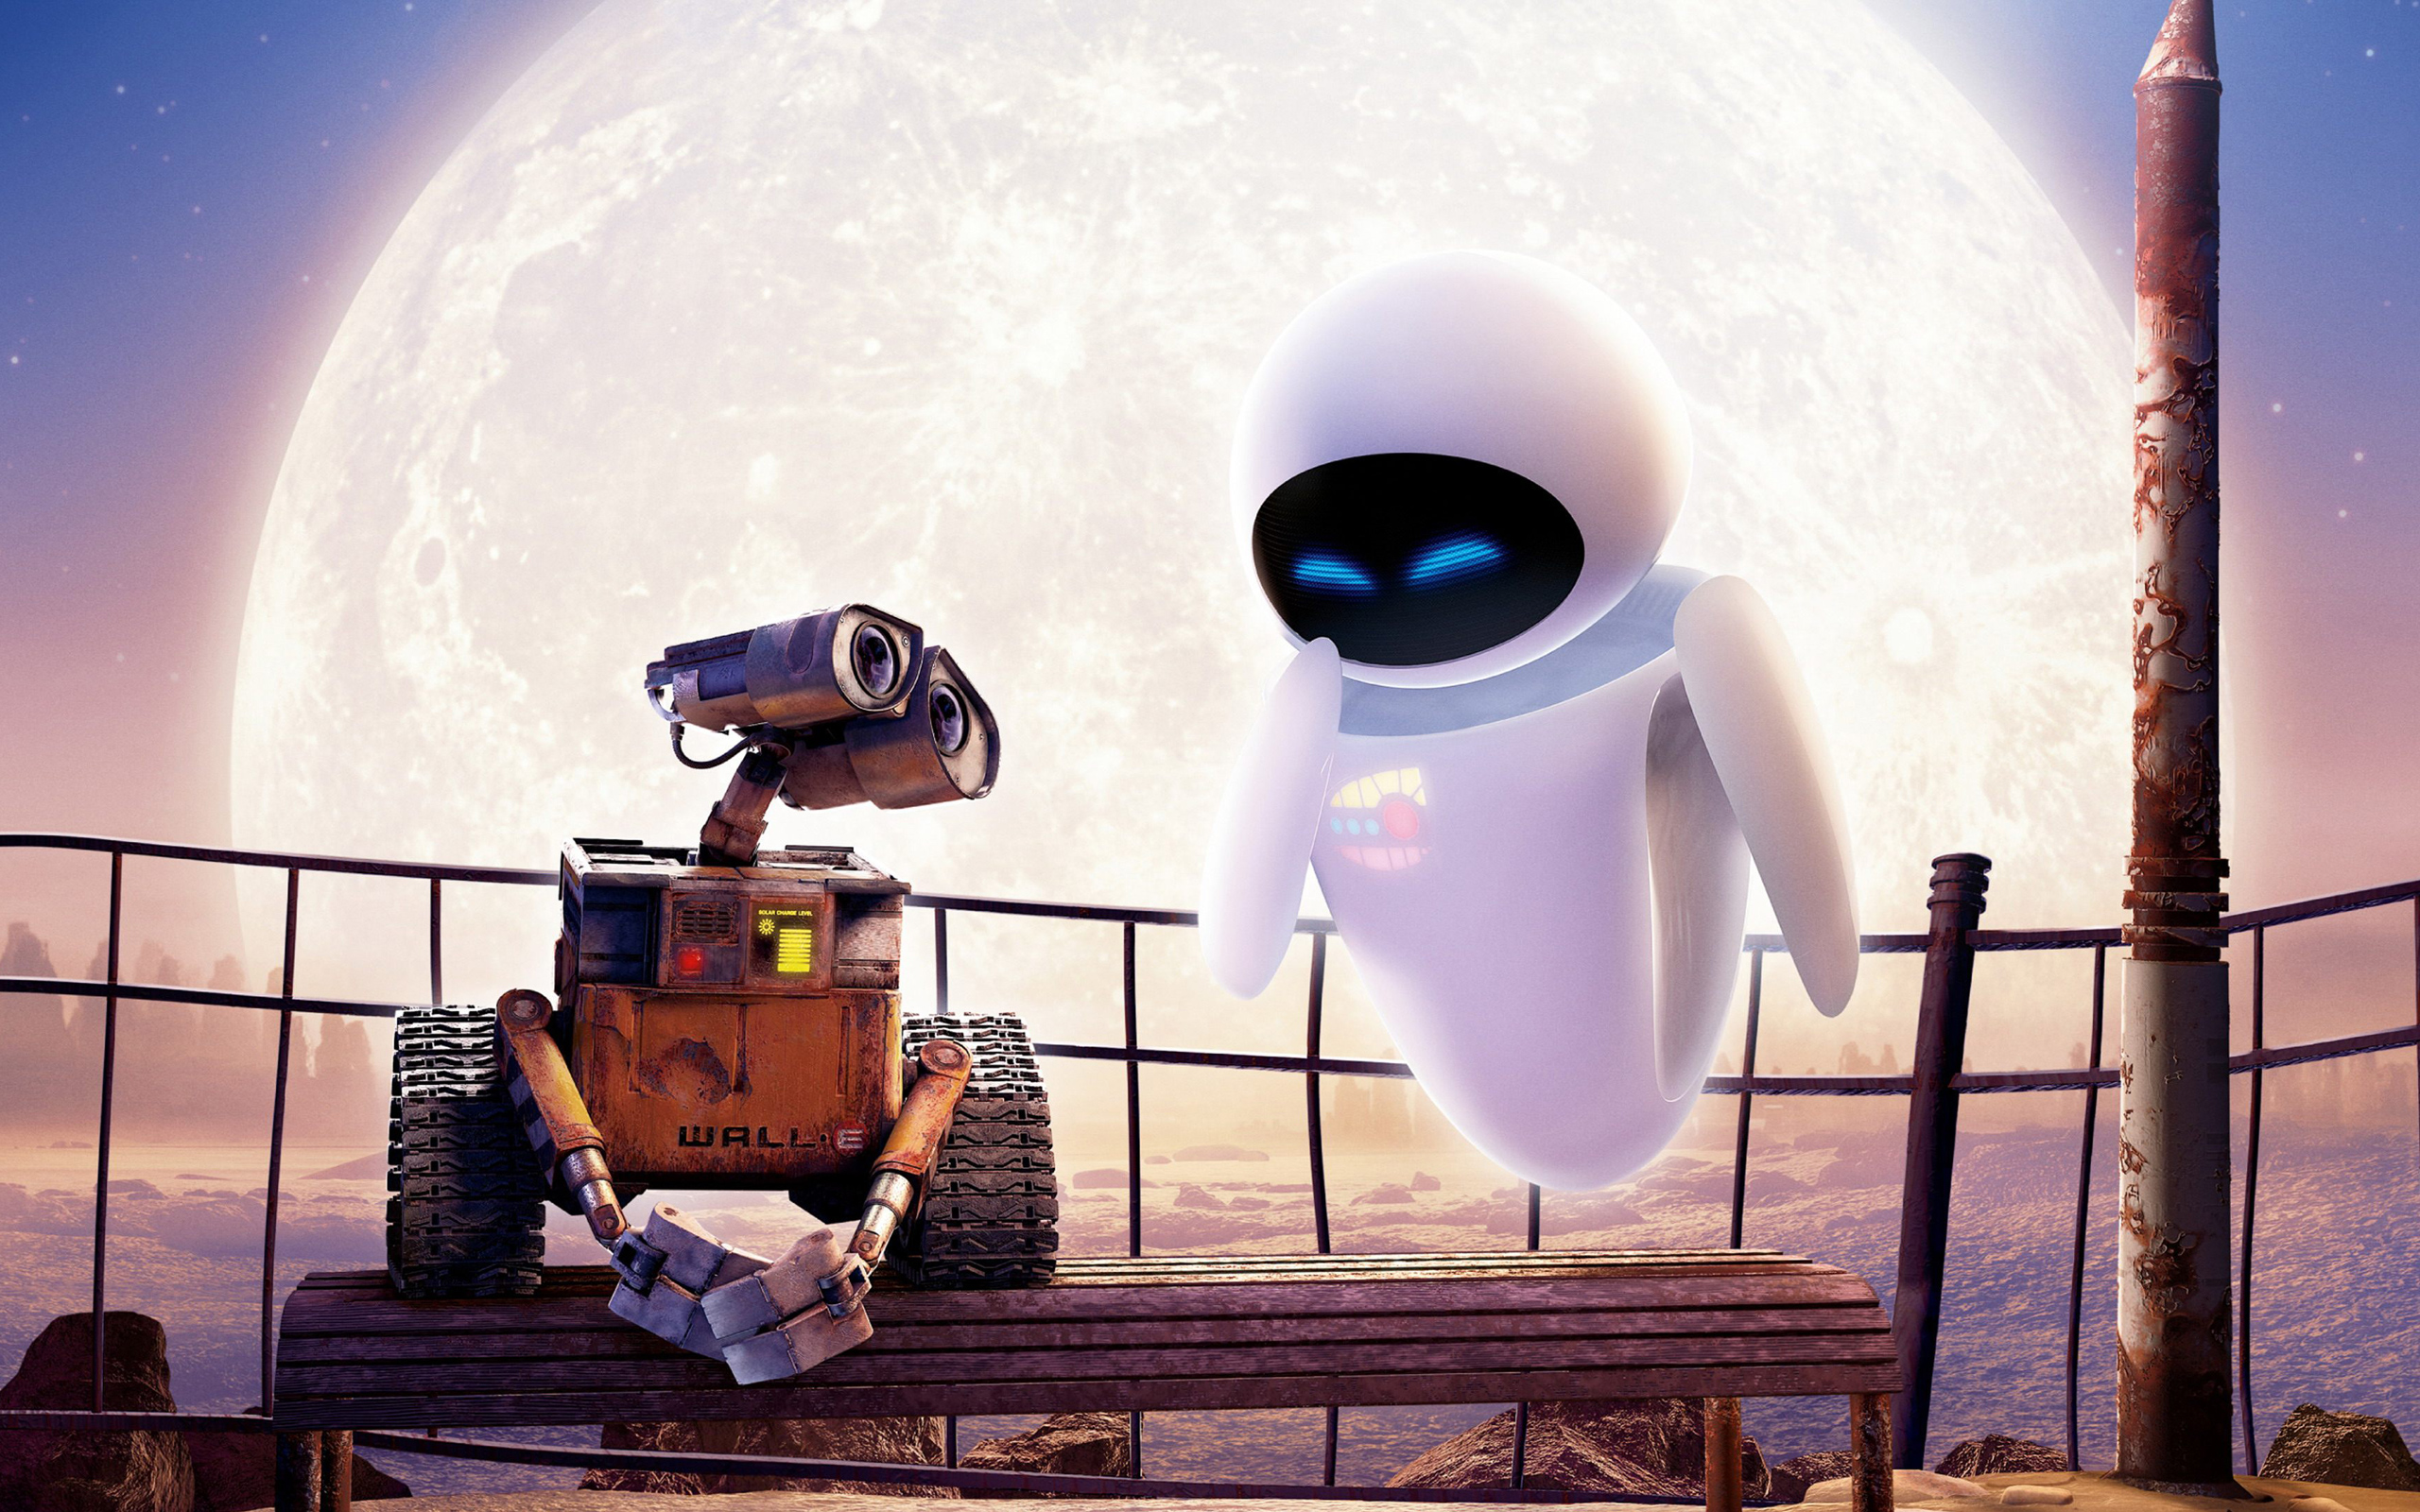 WALL E Eve 390.11 Kb